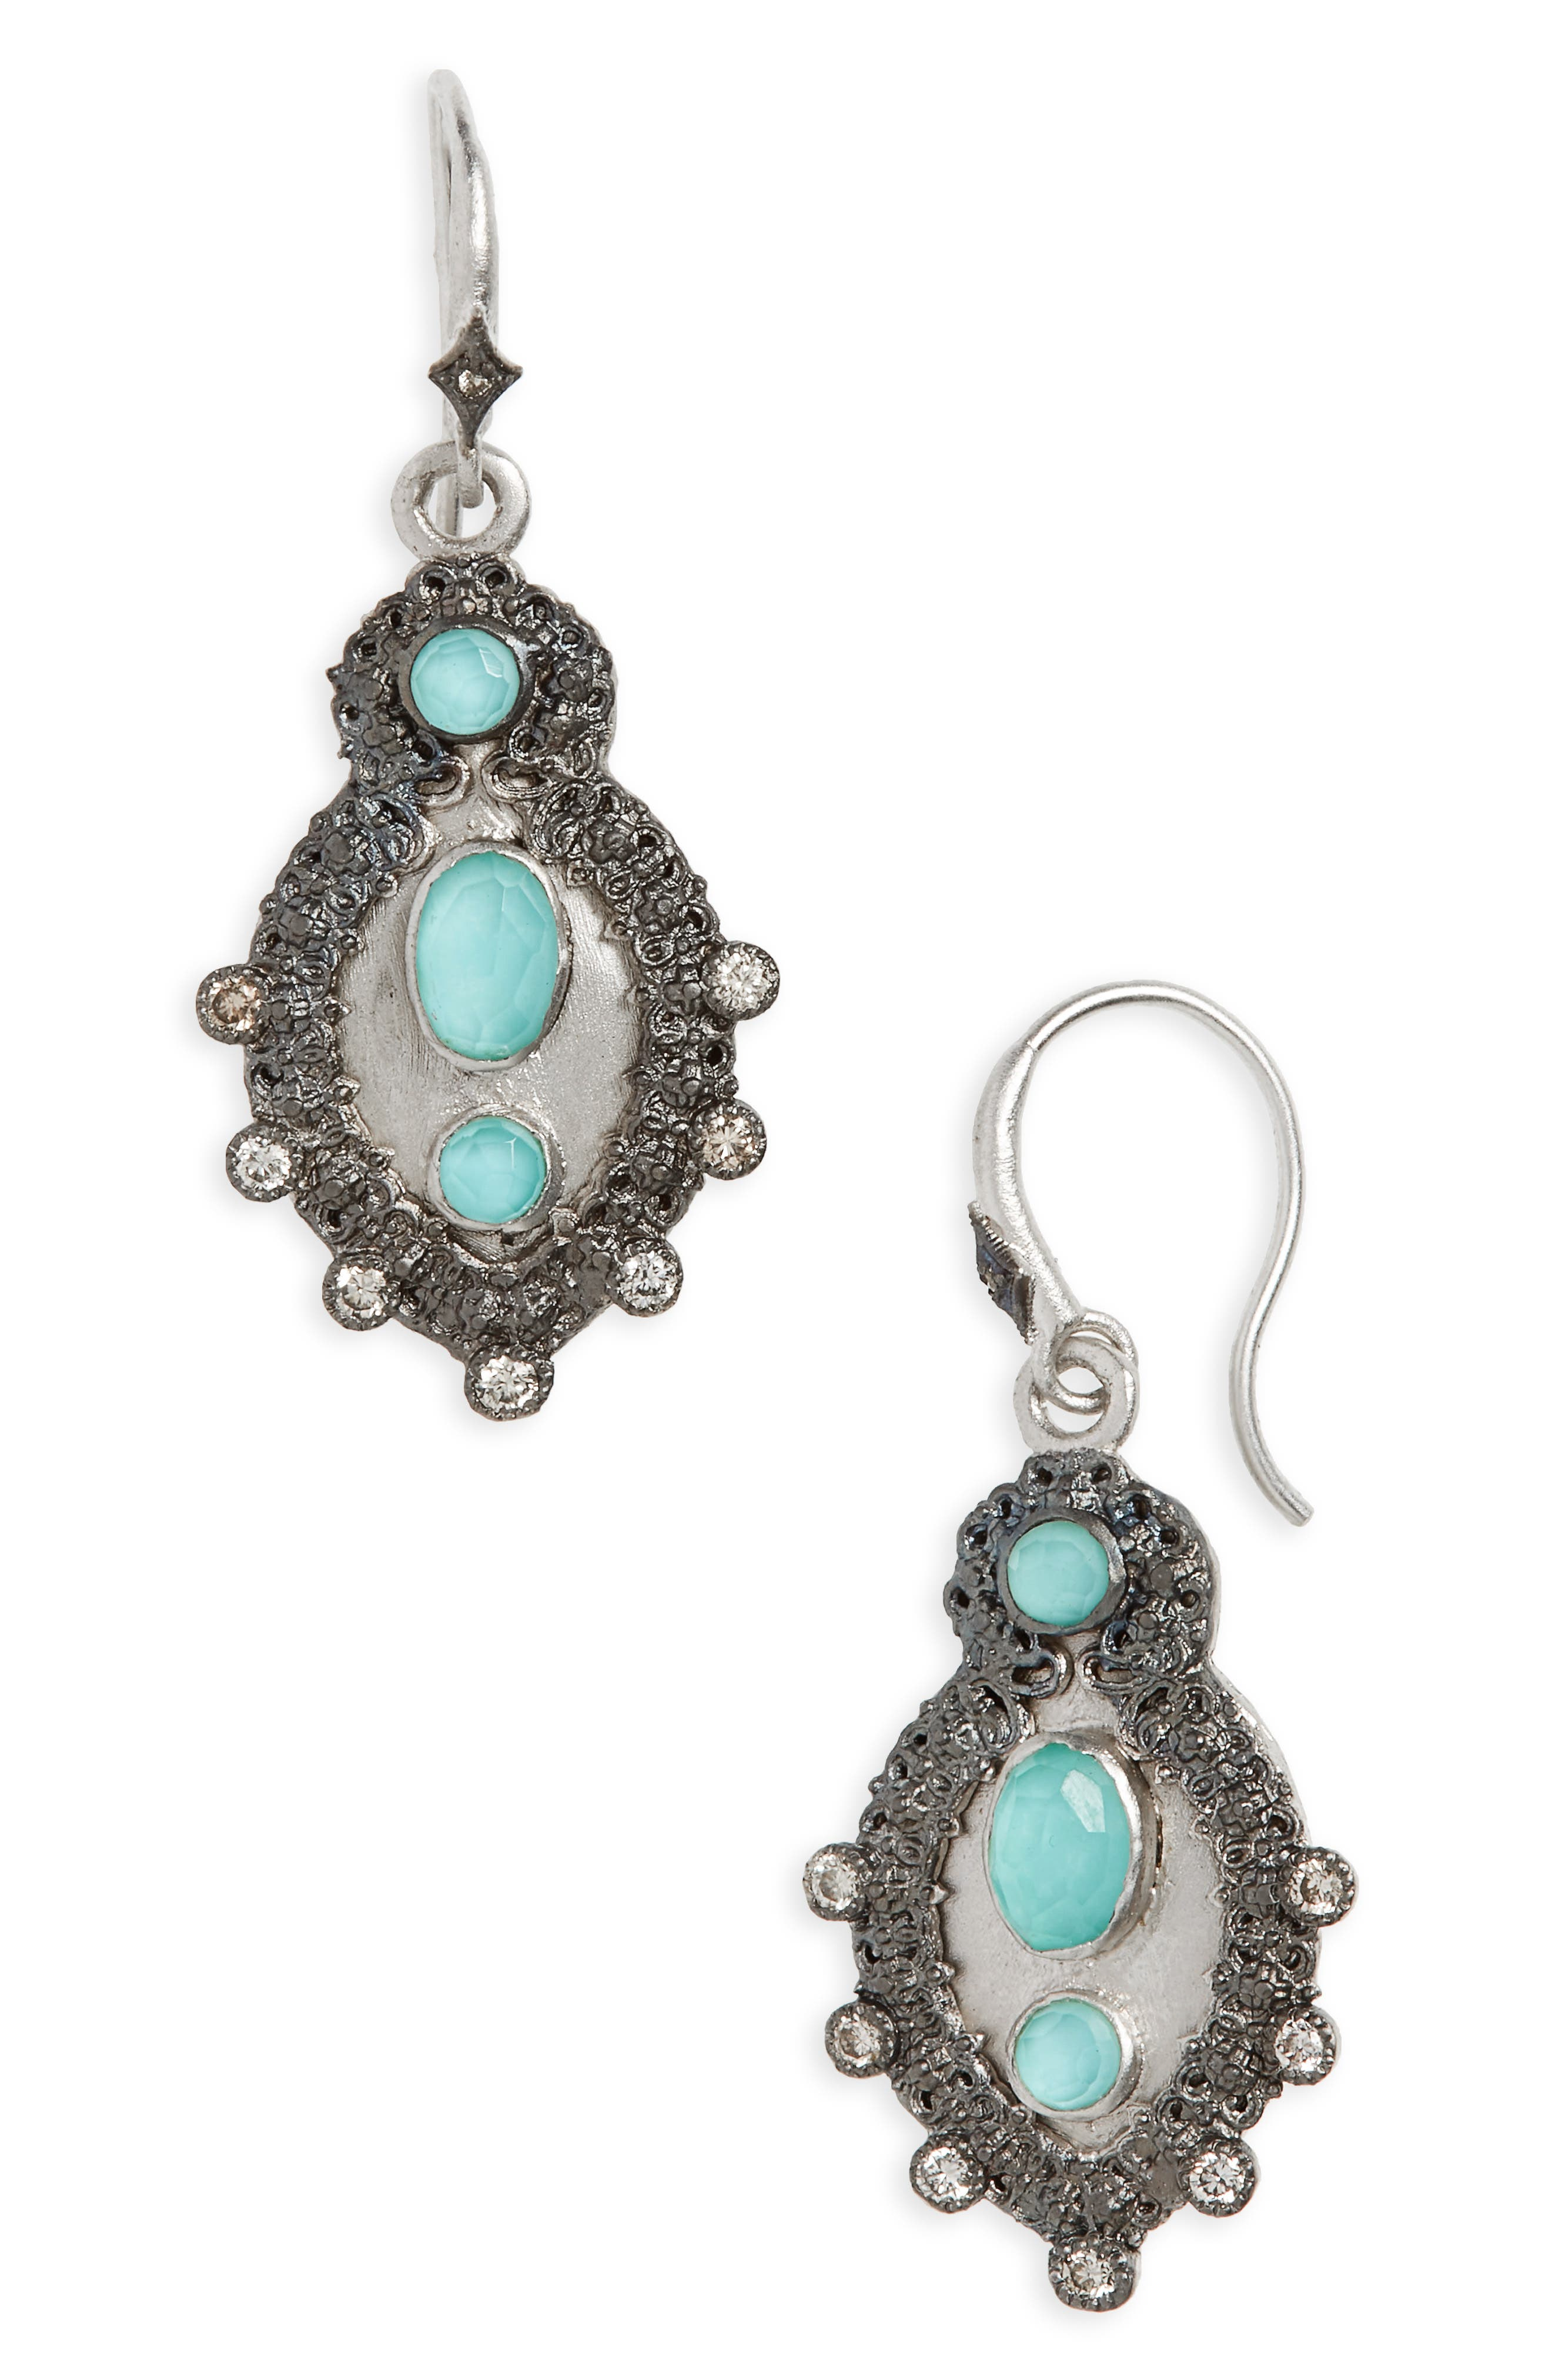 New World Turquoise Doublet Drop Earrings,                             Main thumbnail 1, color,                             Silver/ Turquoise